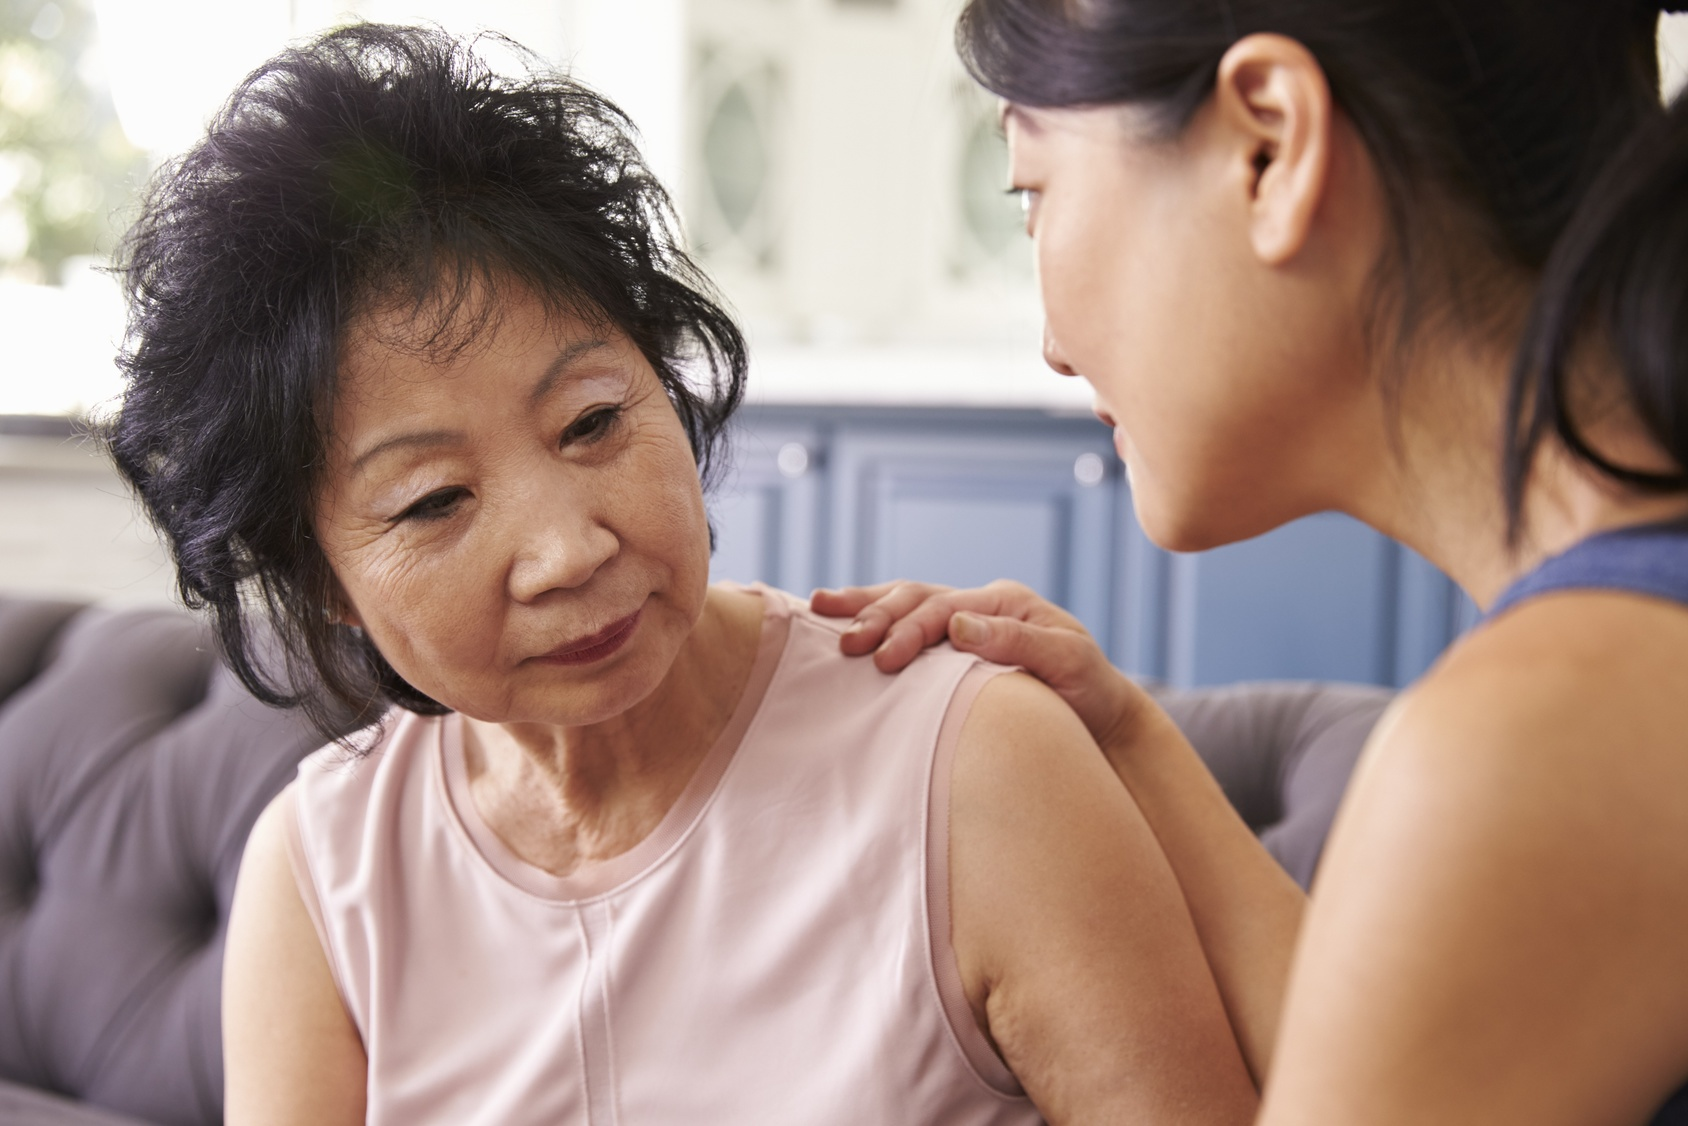 Feeling Guilty for Moving Mom Into Memory Care? Use These Coping Strategies